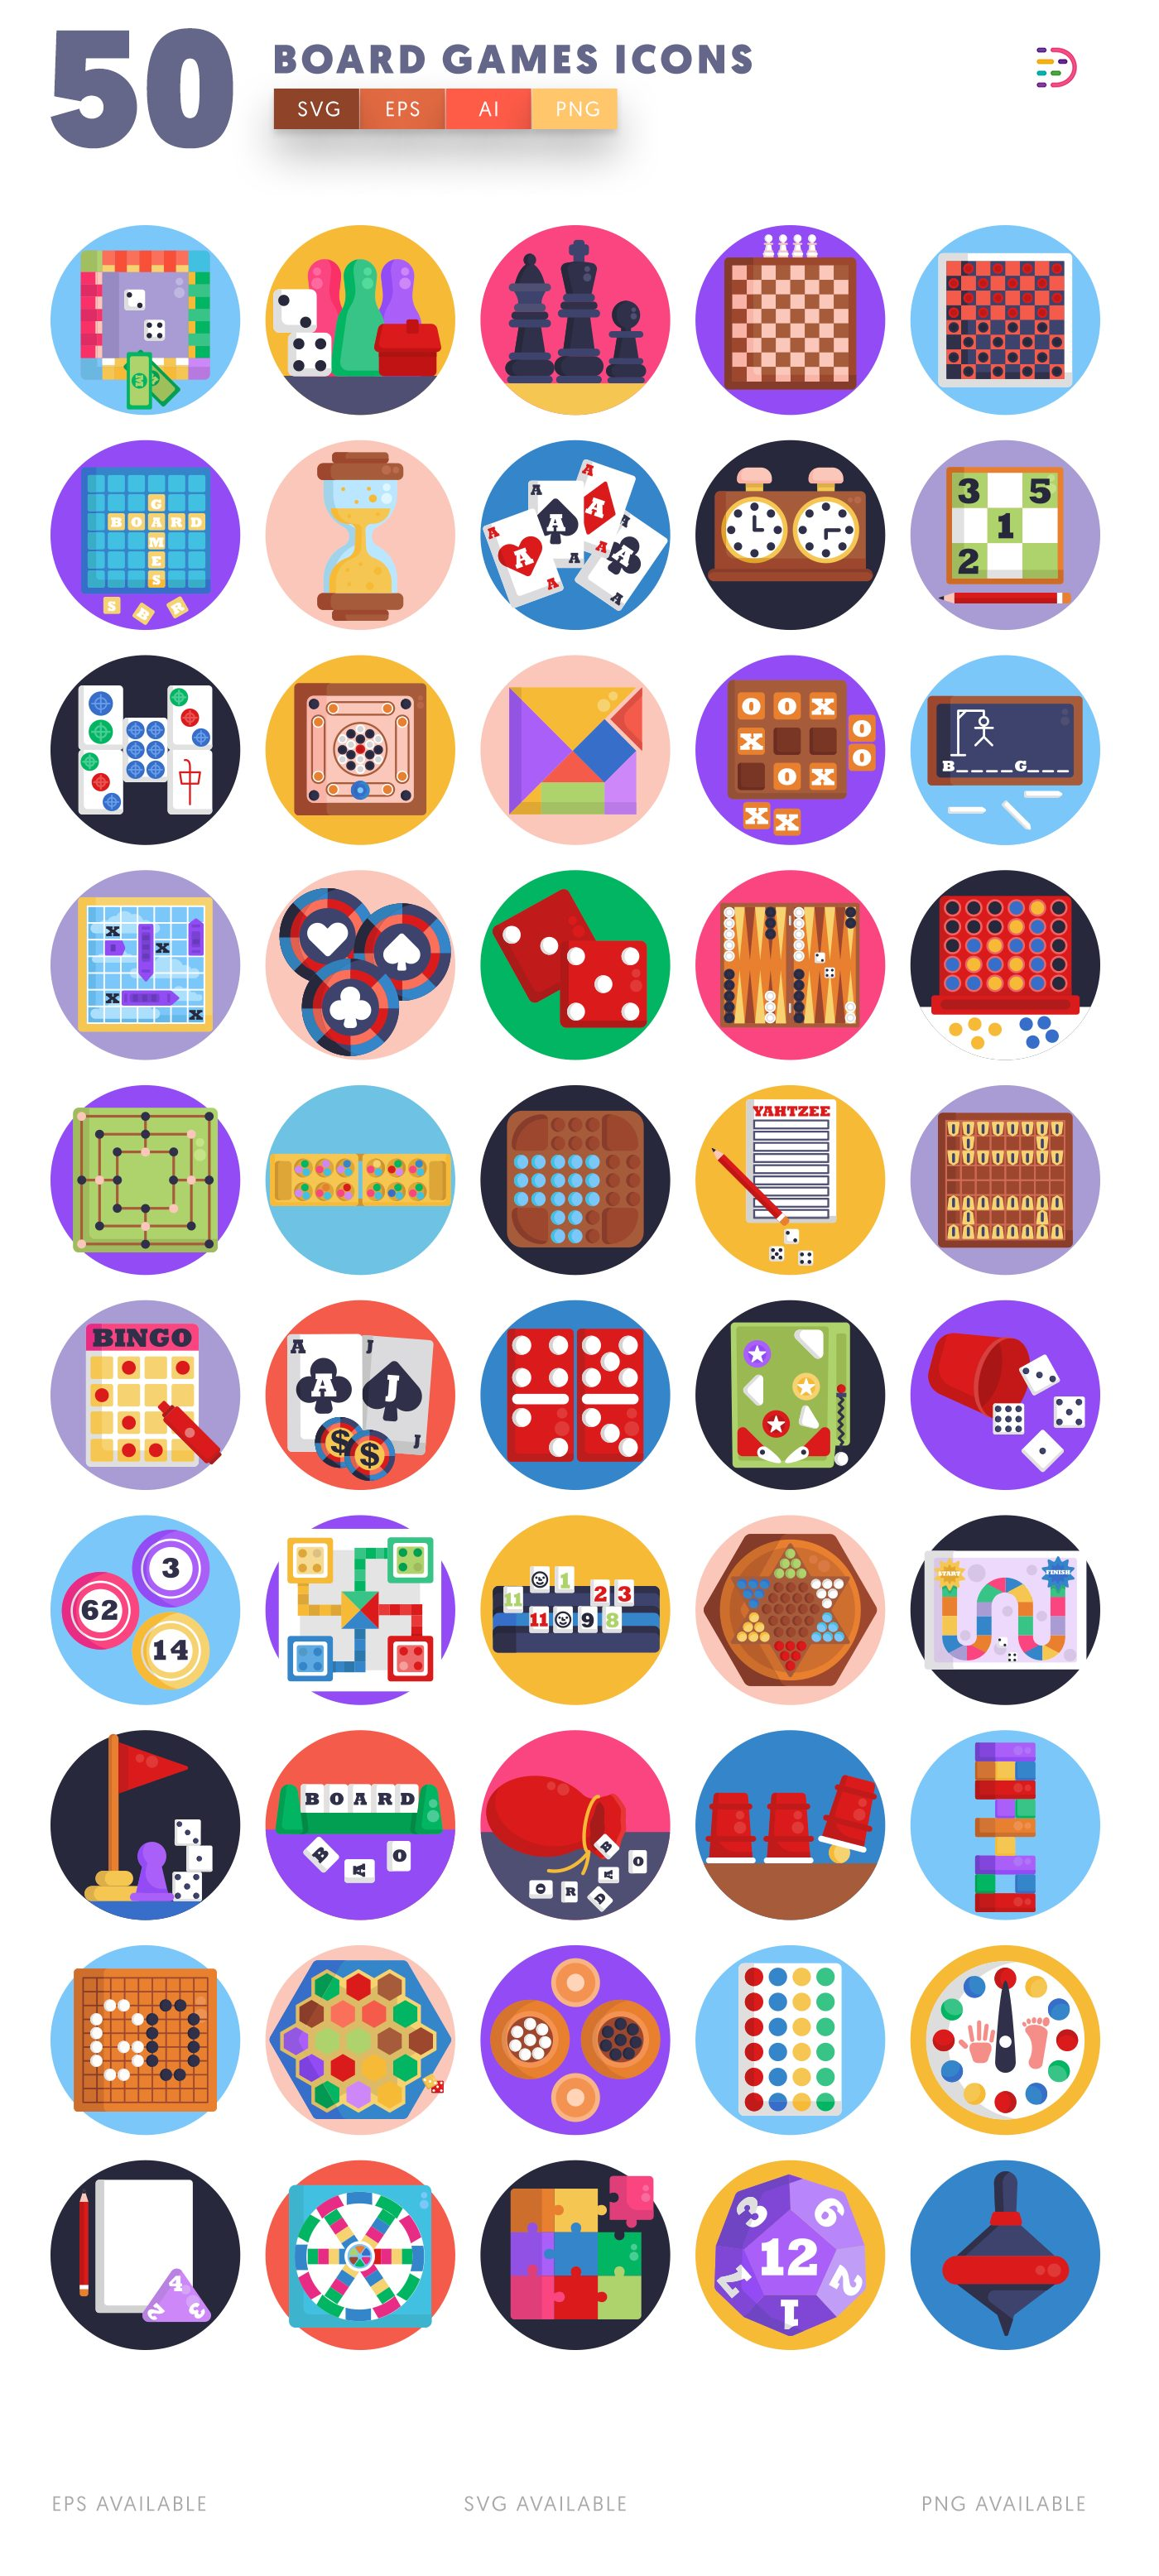 Board Games icon pack